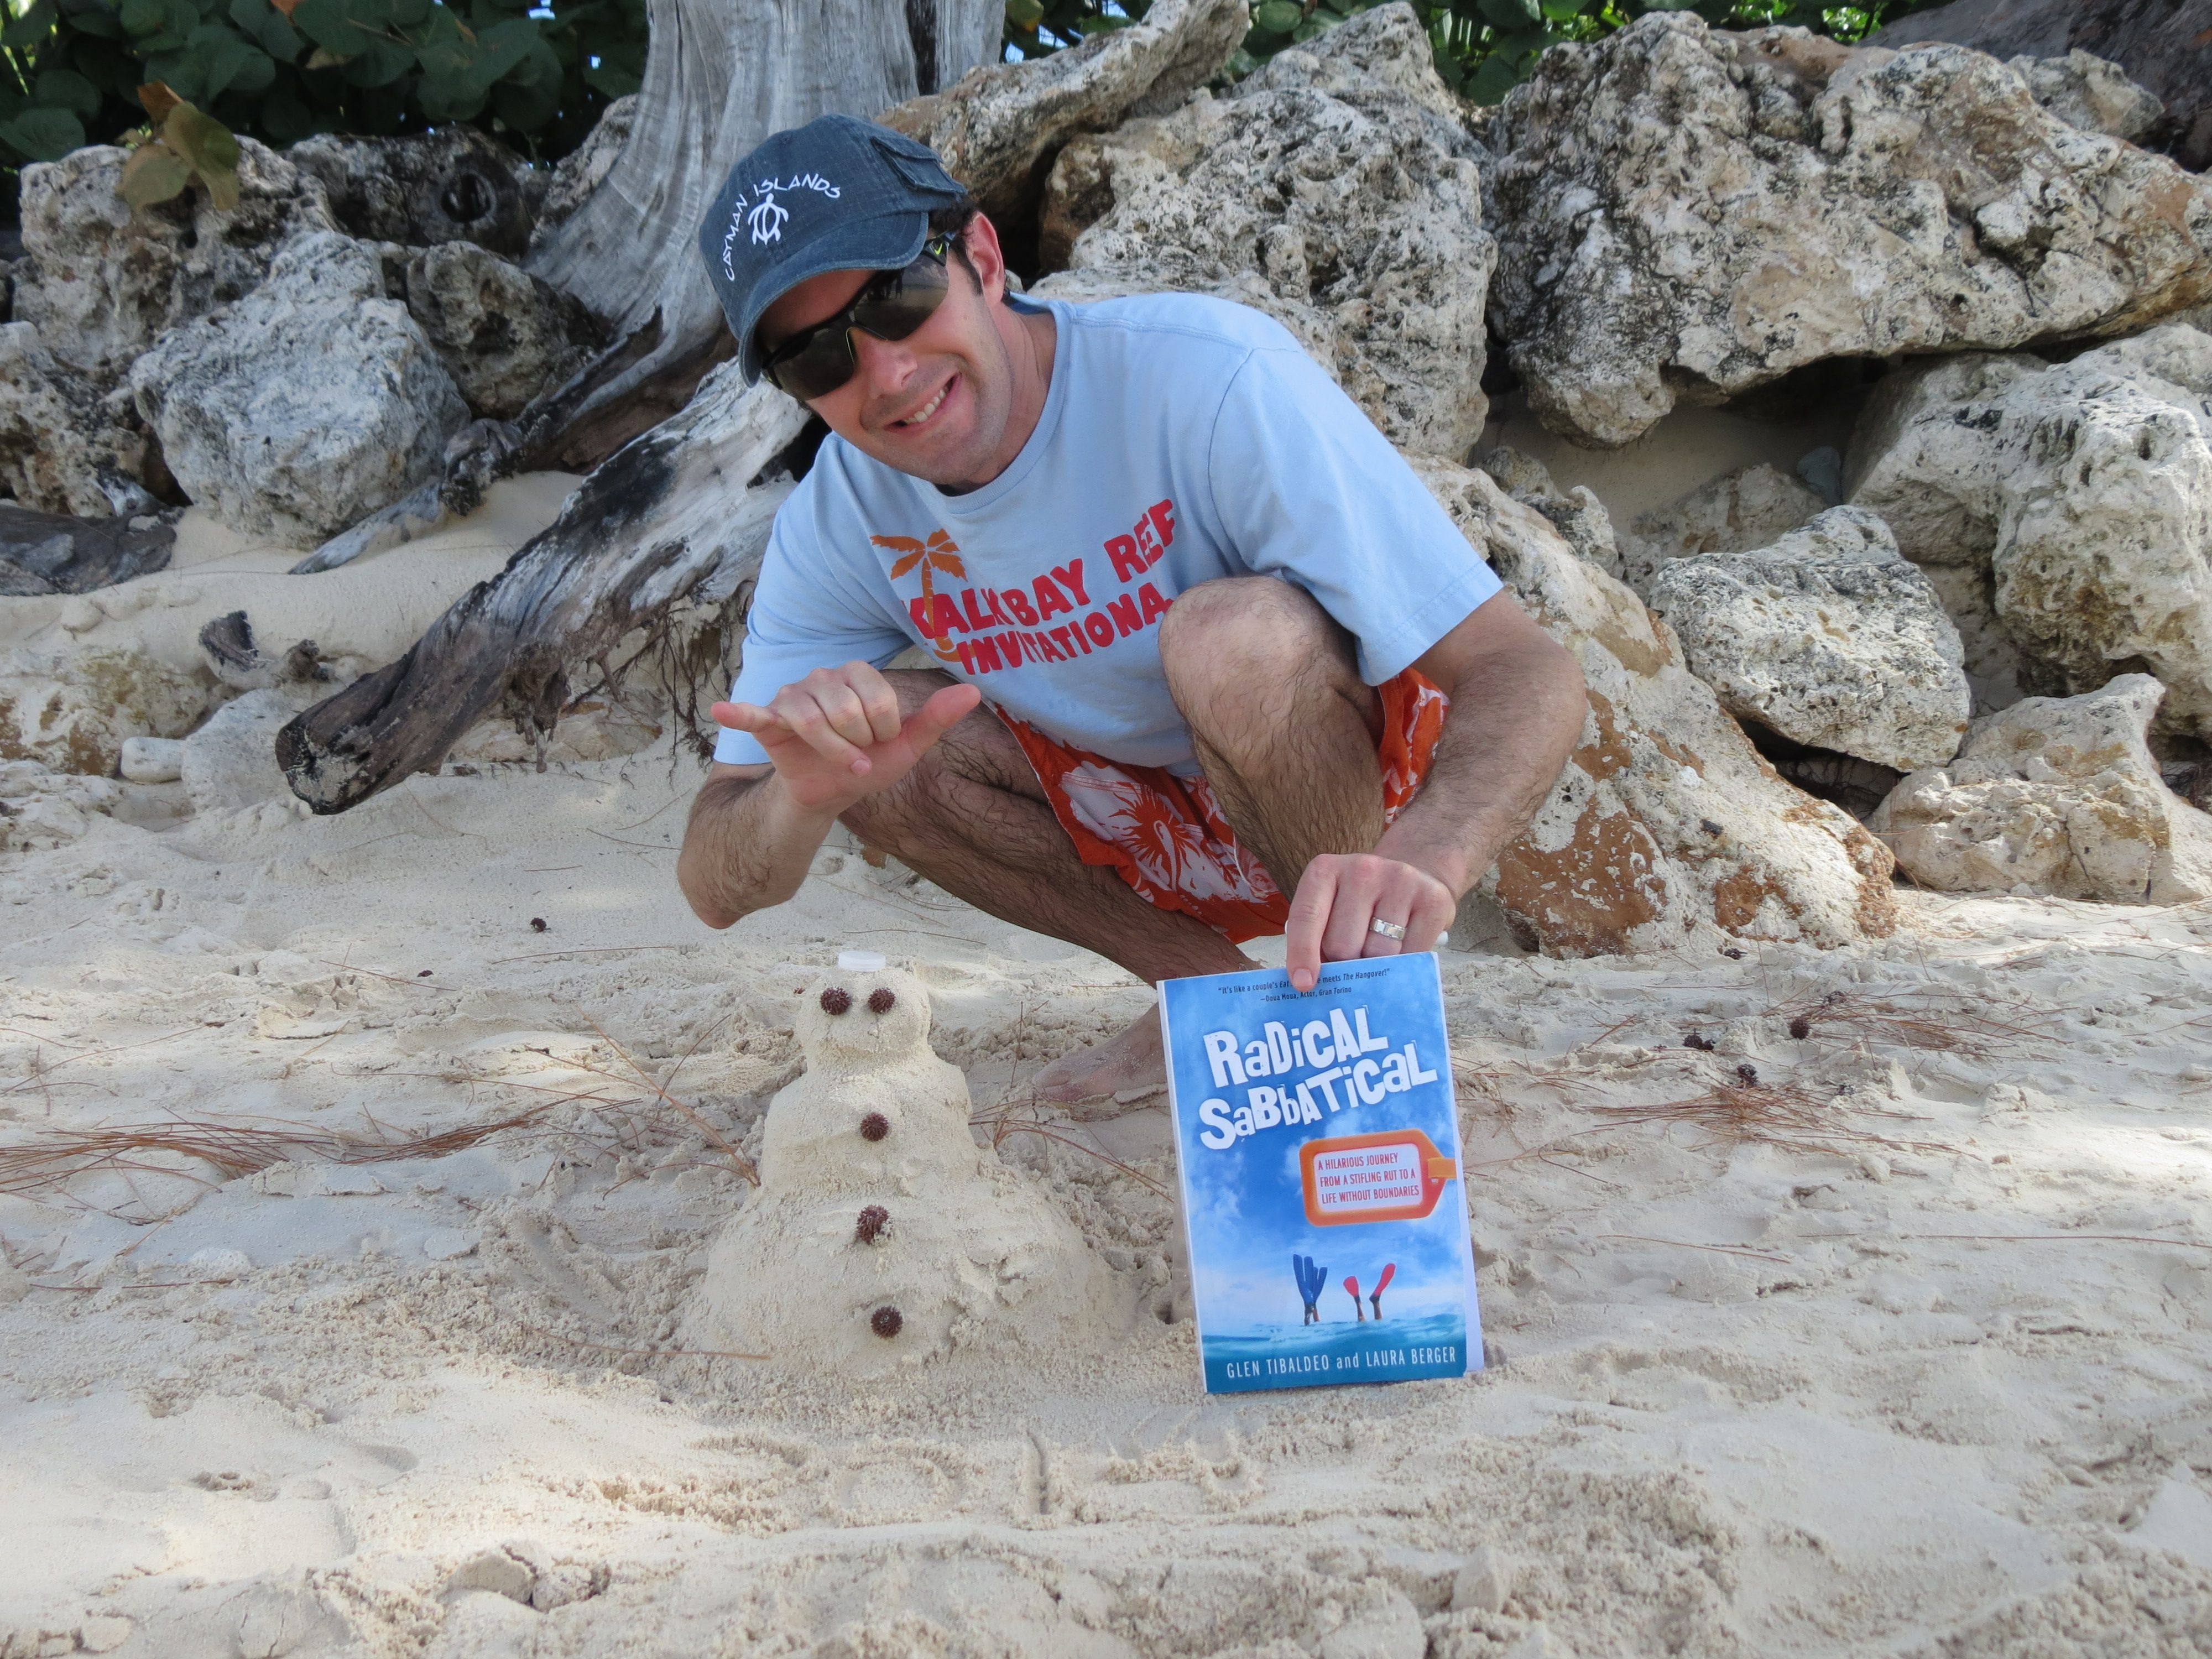 Thanks Dave for this awesome New Years photo while on your own Radical Sabbatical! Happy 2014 to all and keep those photos coming in. Fun to see where Radical Sabbatical will show up next. Not sure if anyone can top the sandman here  Very creative. #RadicalSabbatical #GrandCayman